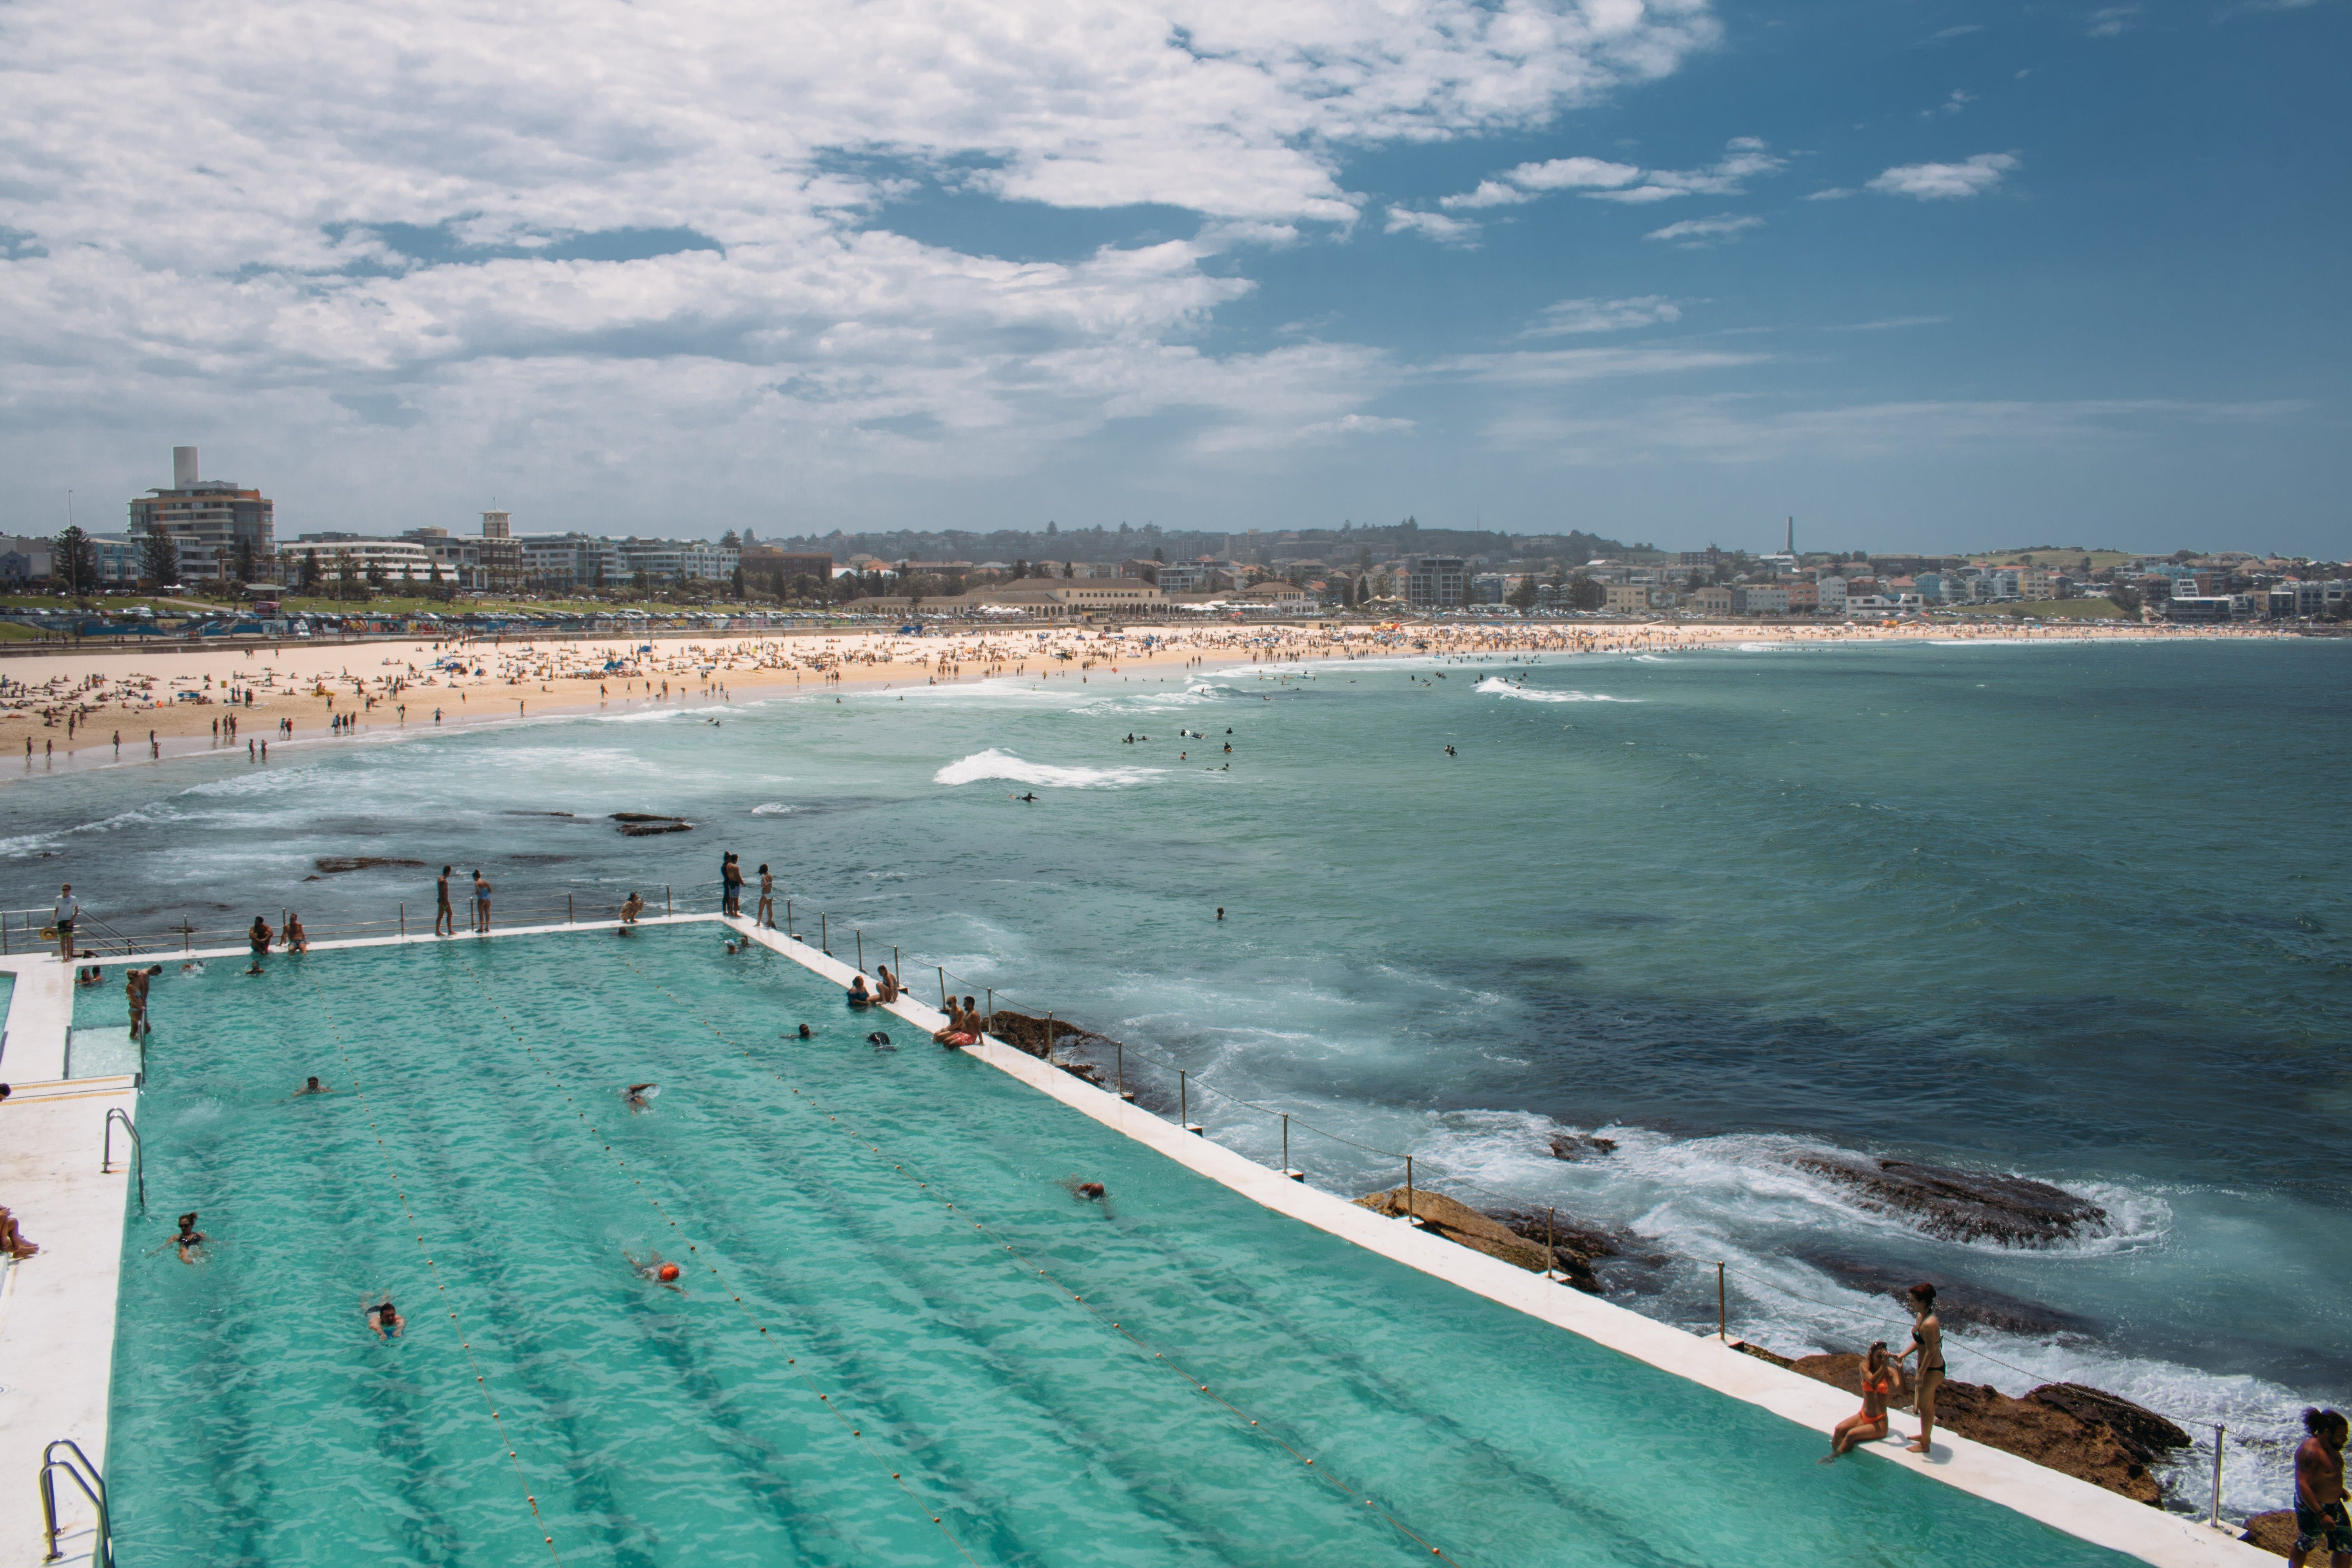 bondi icebergs at bondi beach